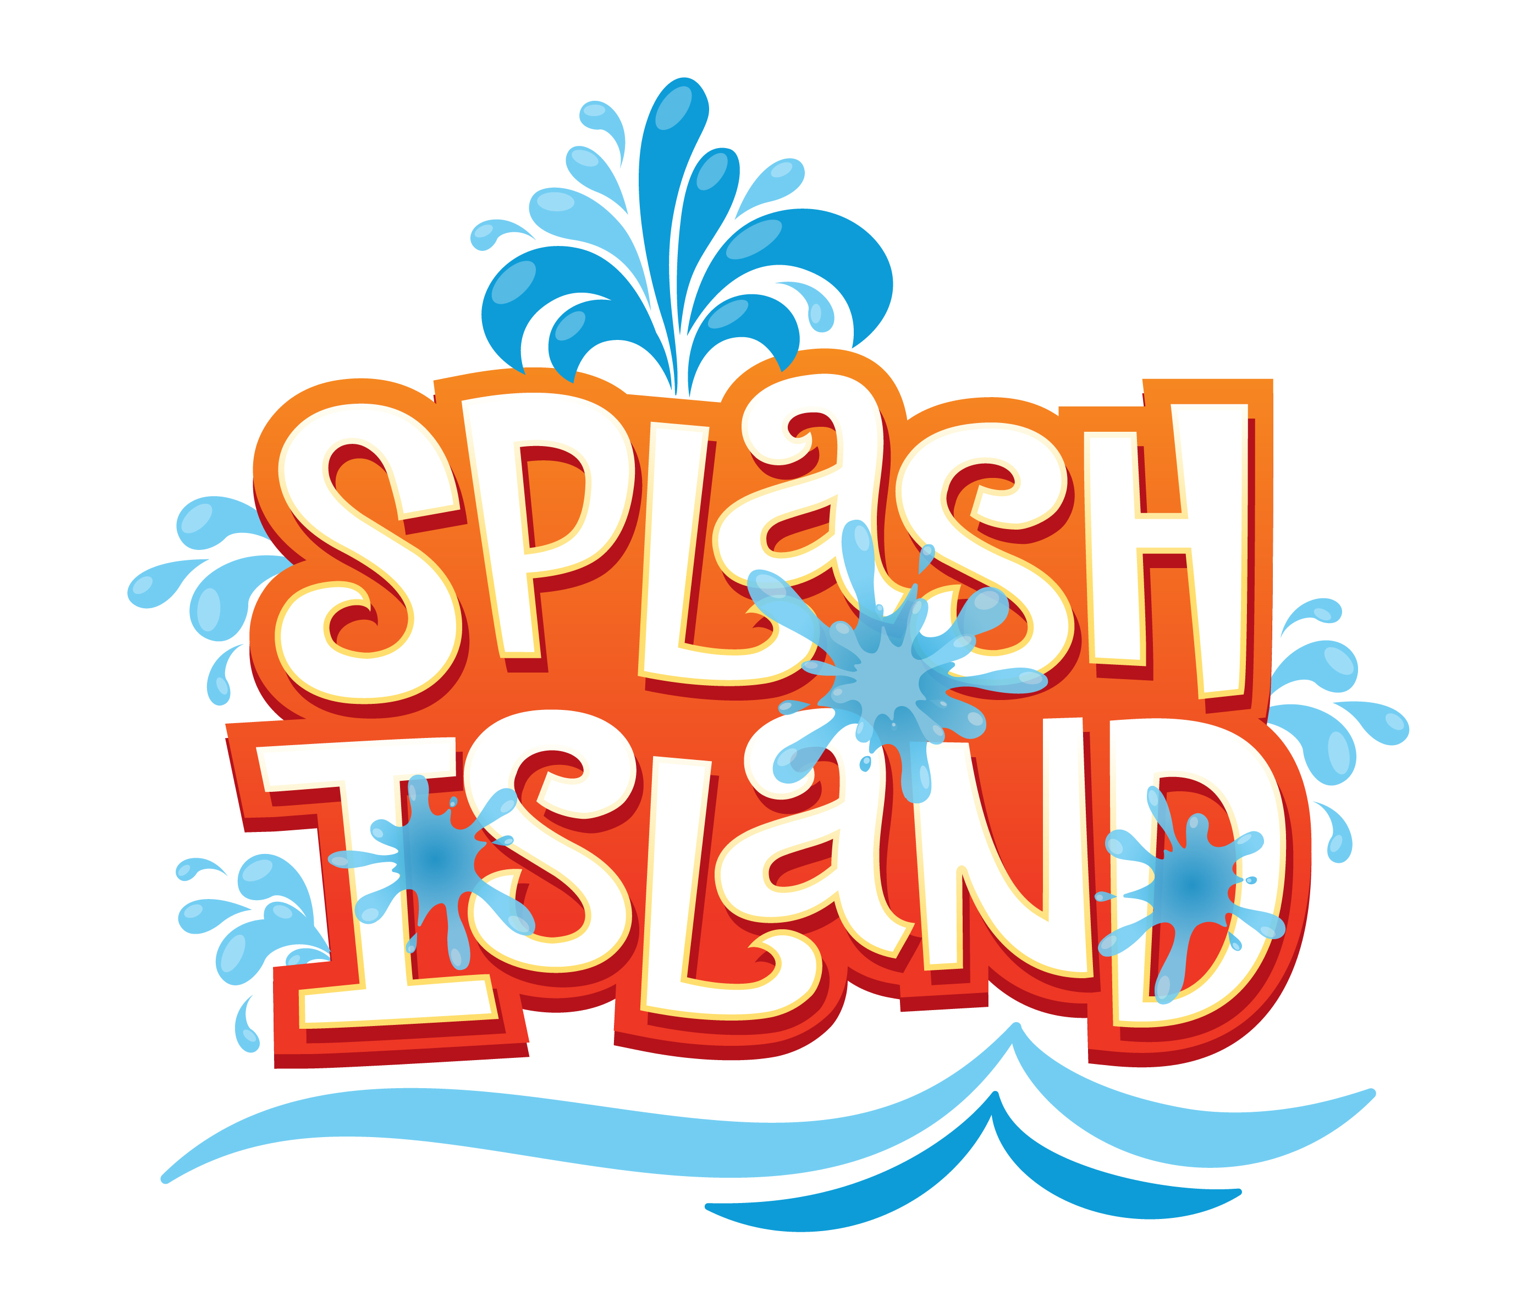 newsplusnotes worlds of fun announces new water park addition for 2015 rh newsplusnotes blogspot com water park logo design water park lagos